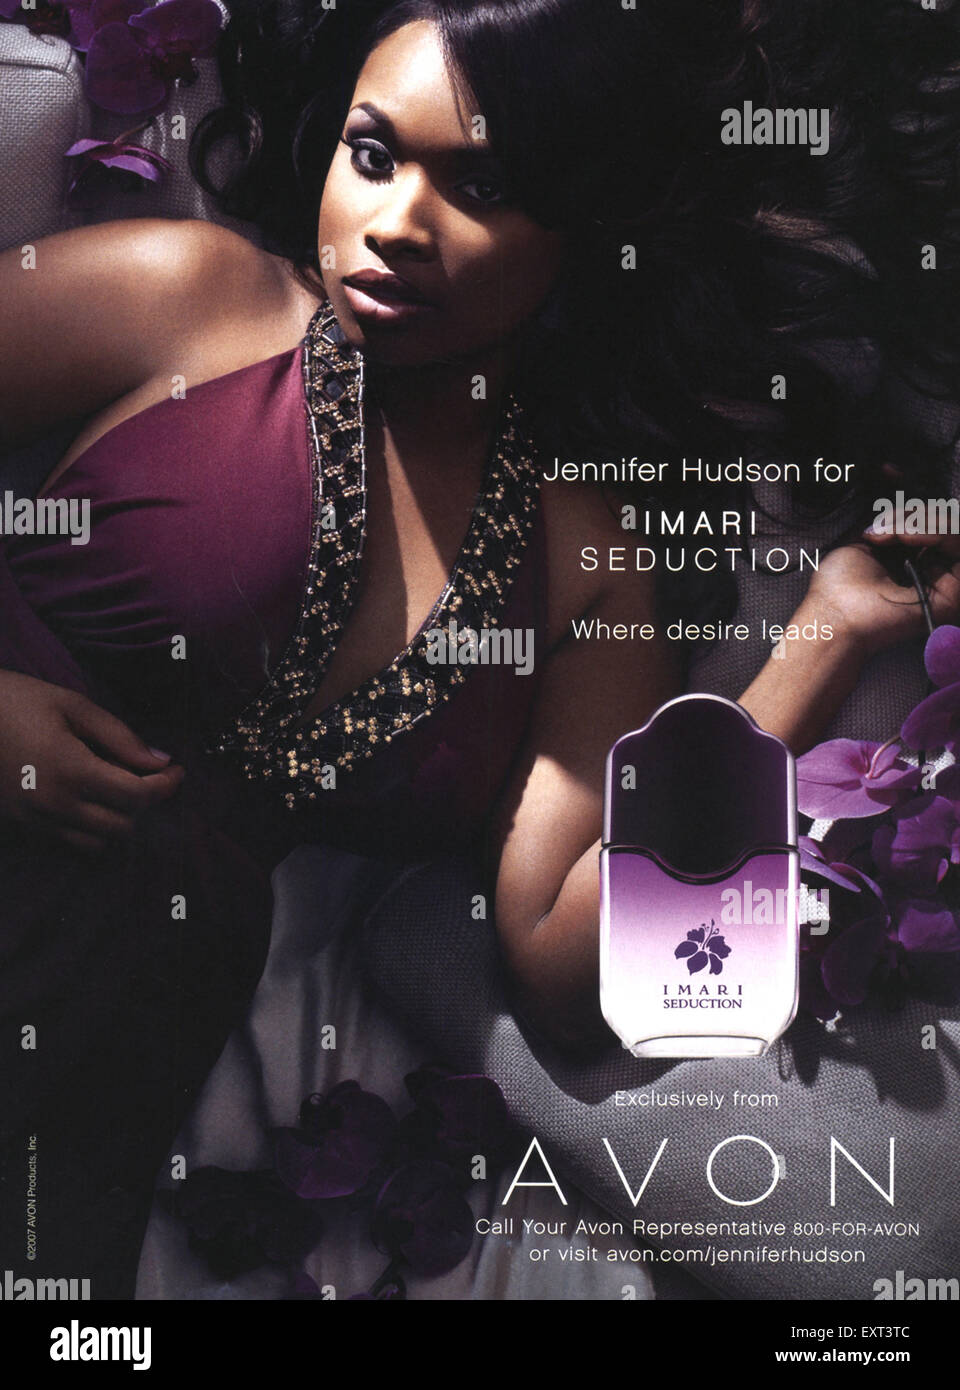 2000s USA Avon Imari Seduction Magazine Advert - Stock Image